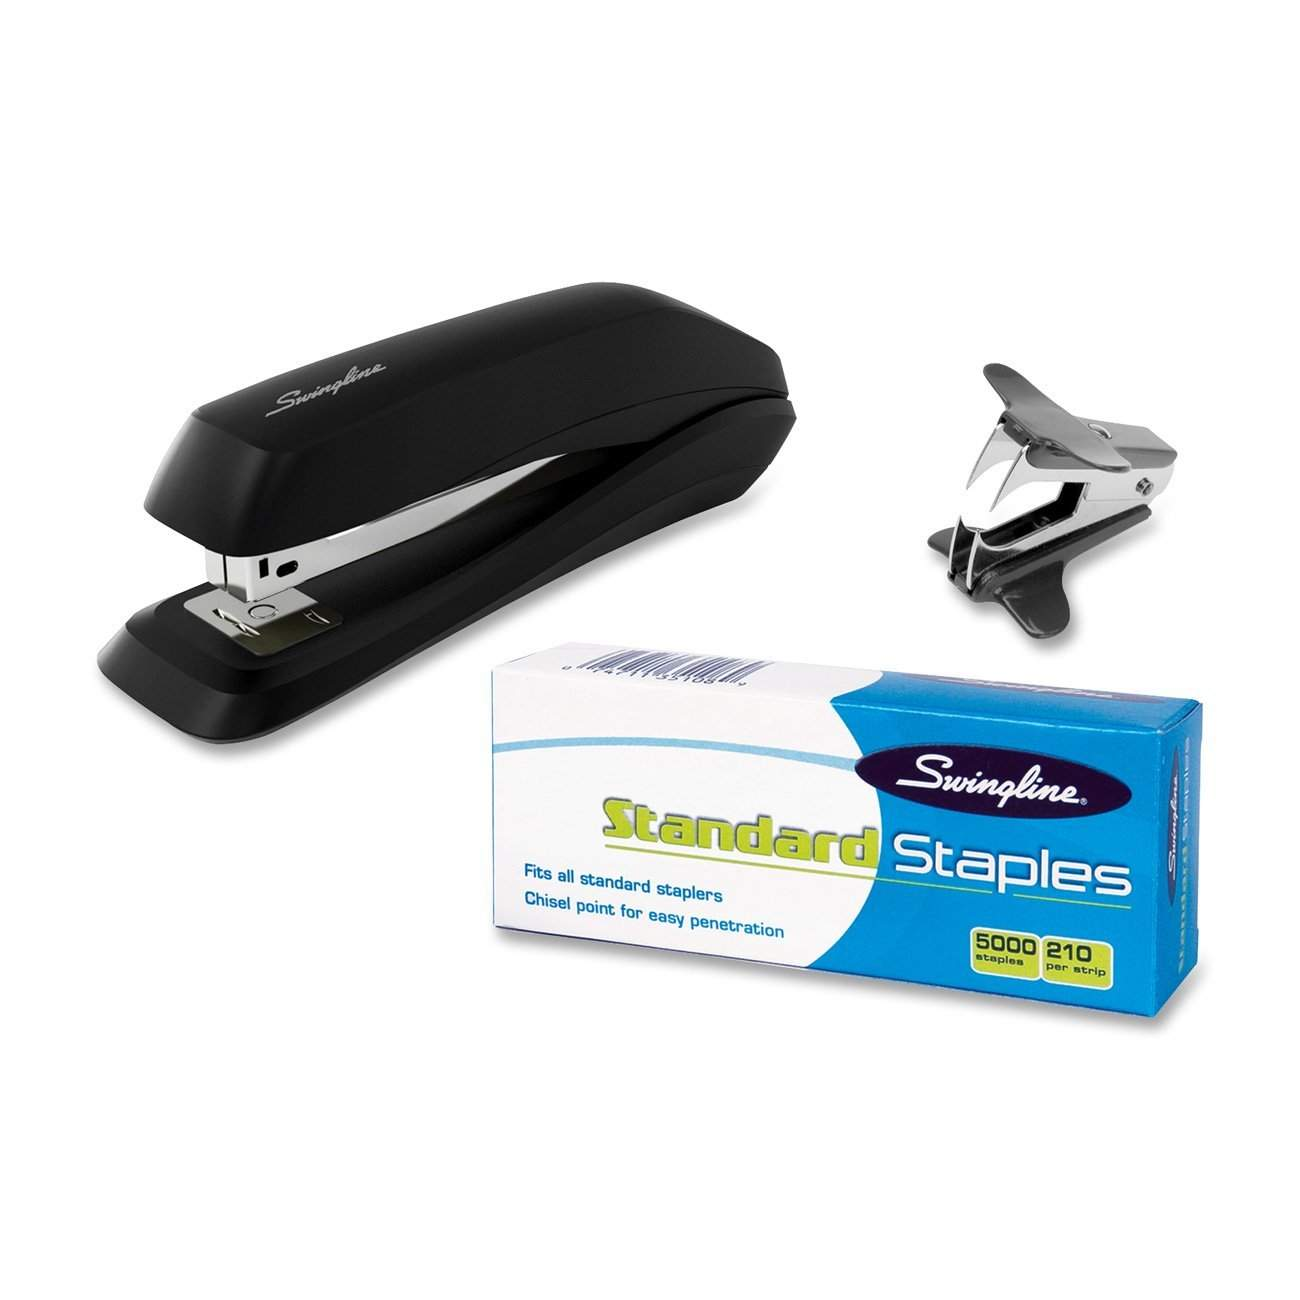 most durable staplers